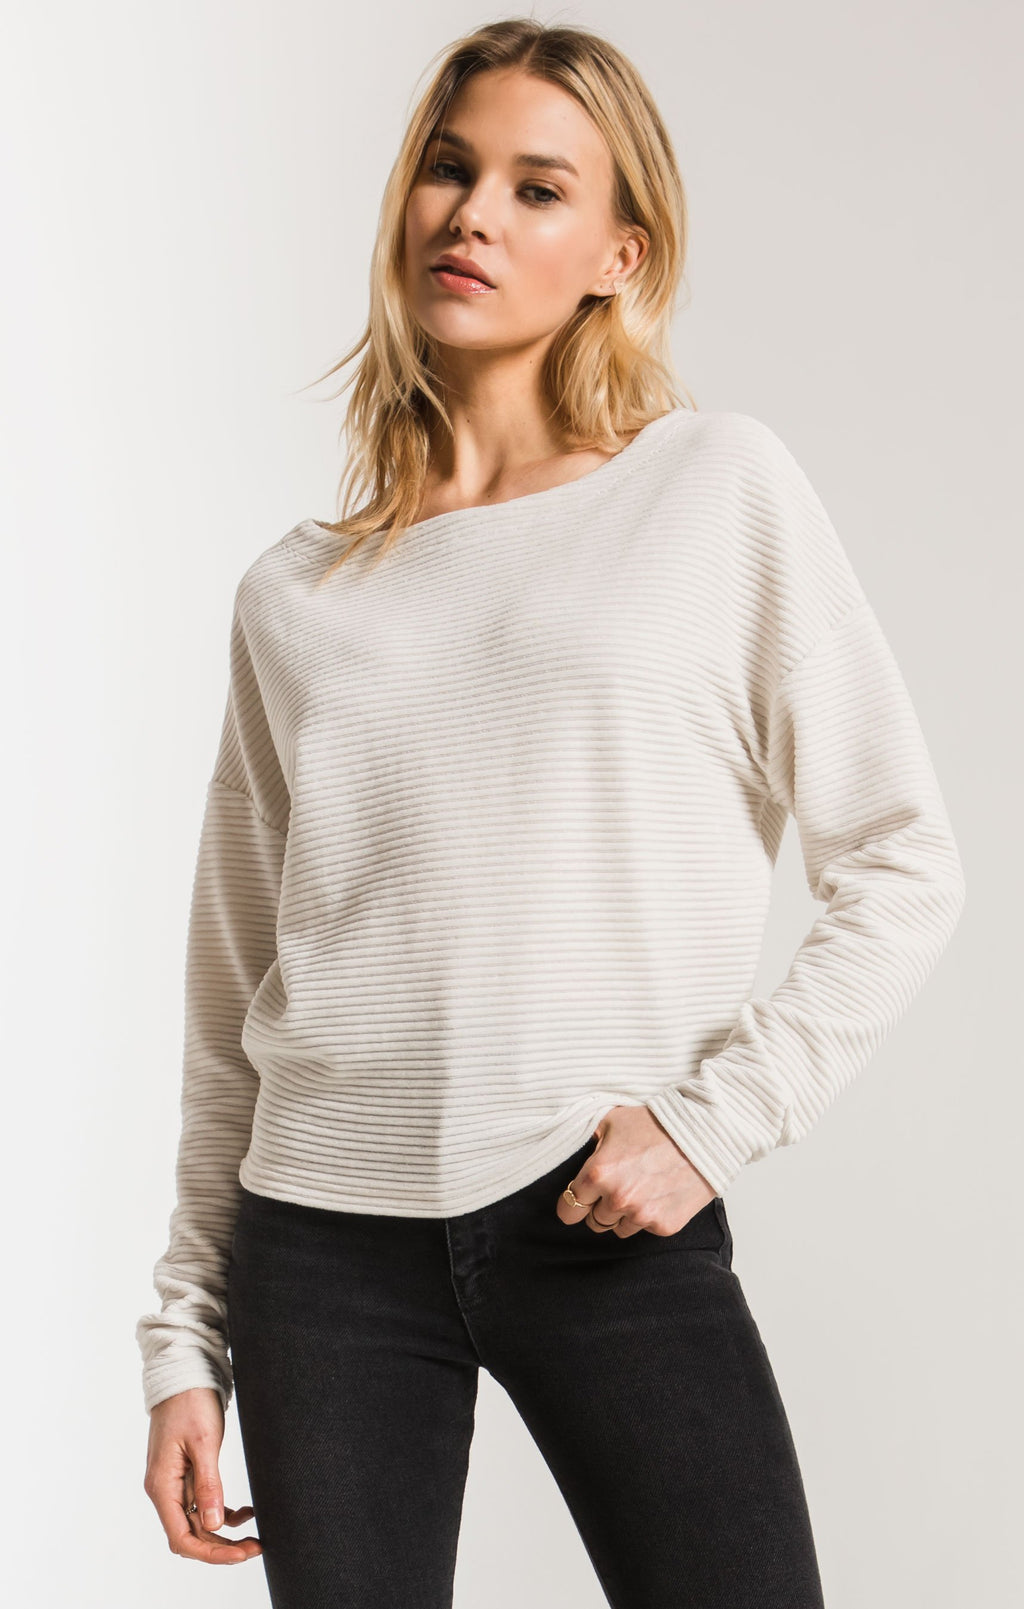 THE KNIT CORDUROY BOAT NECK TOP